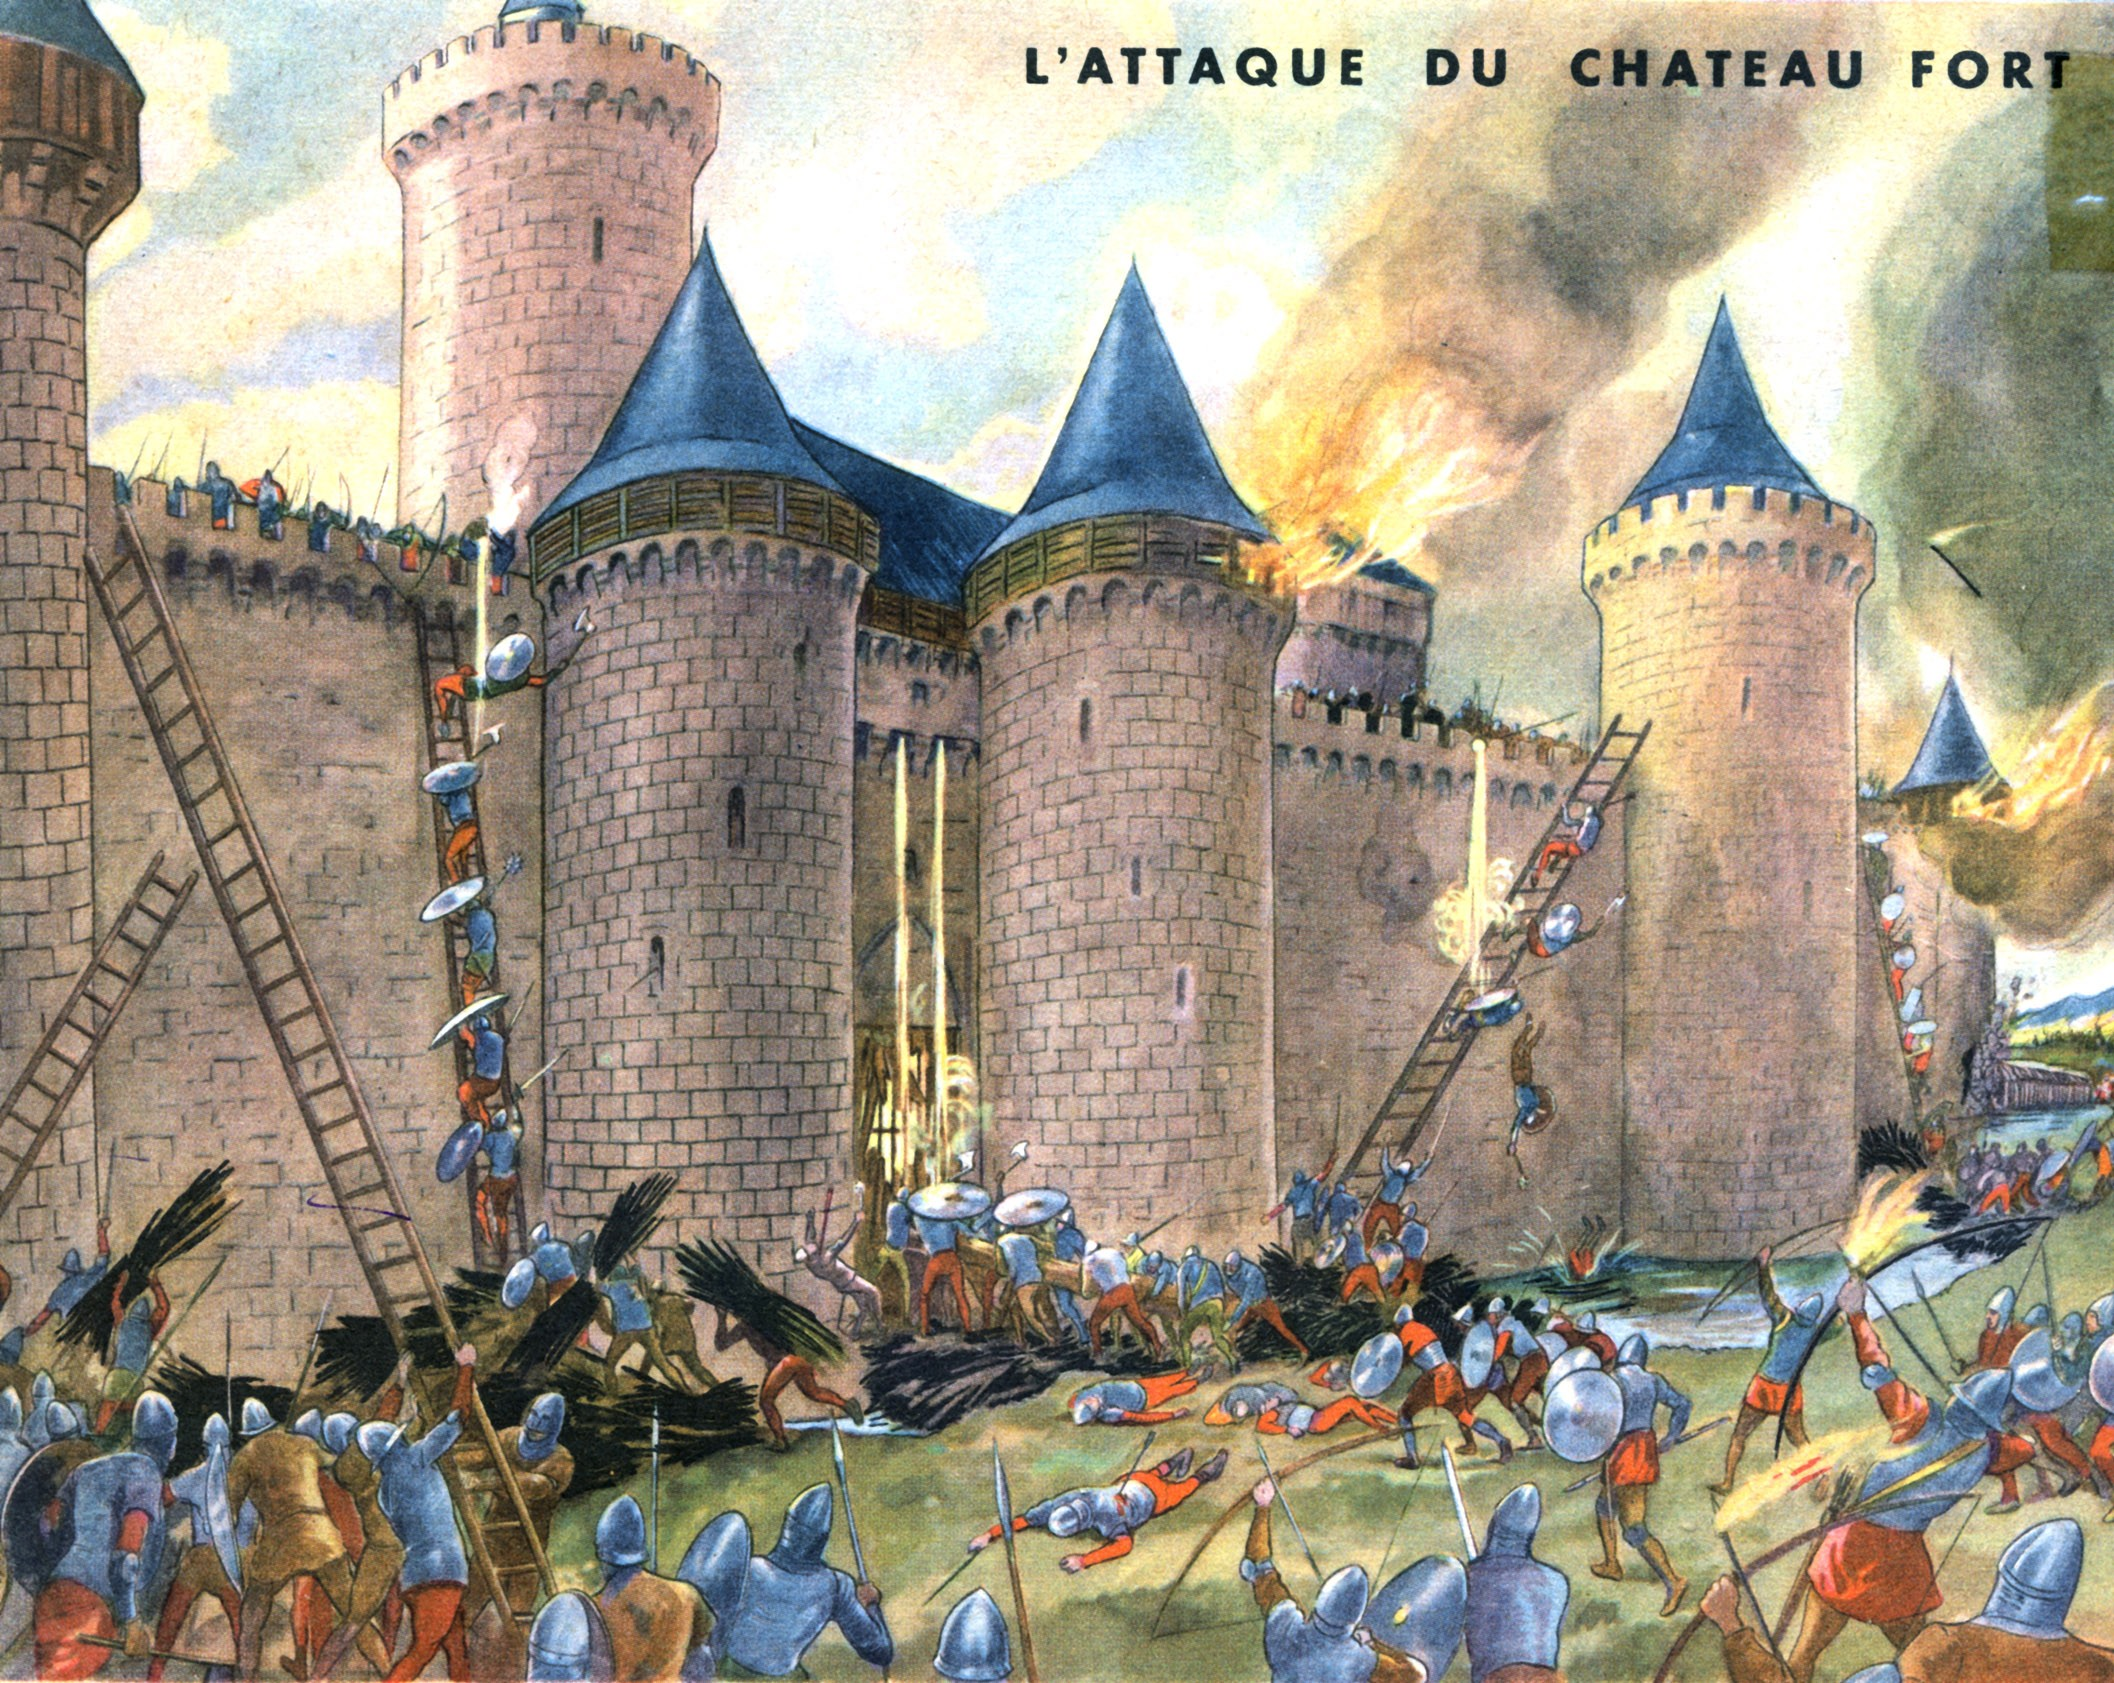 10 attaque du chateau fort